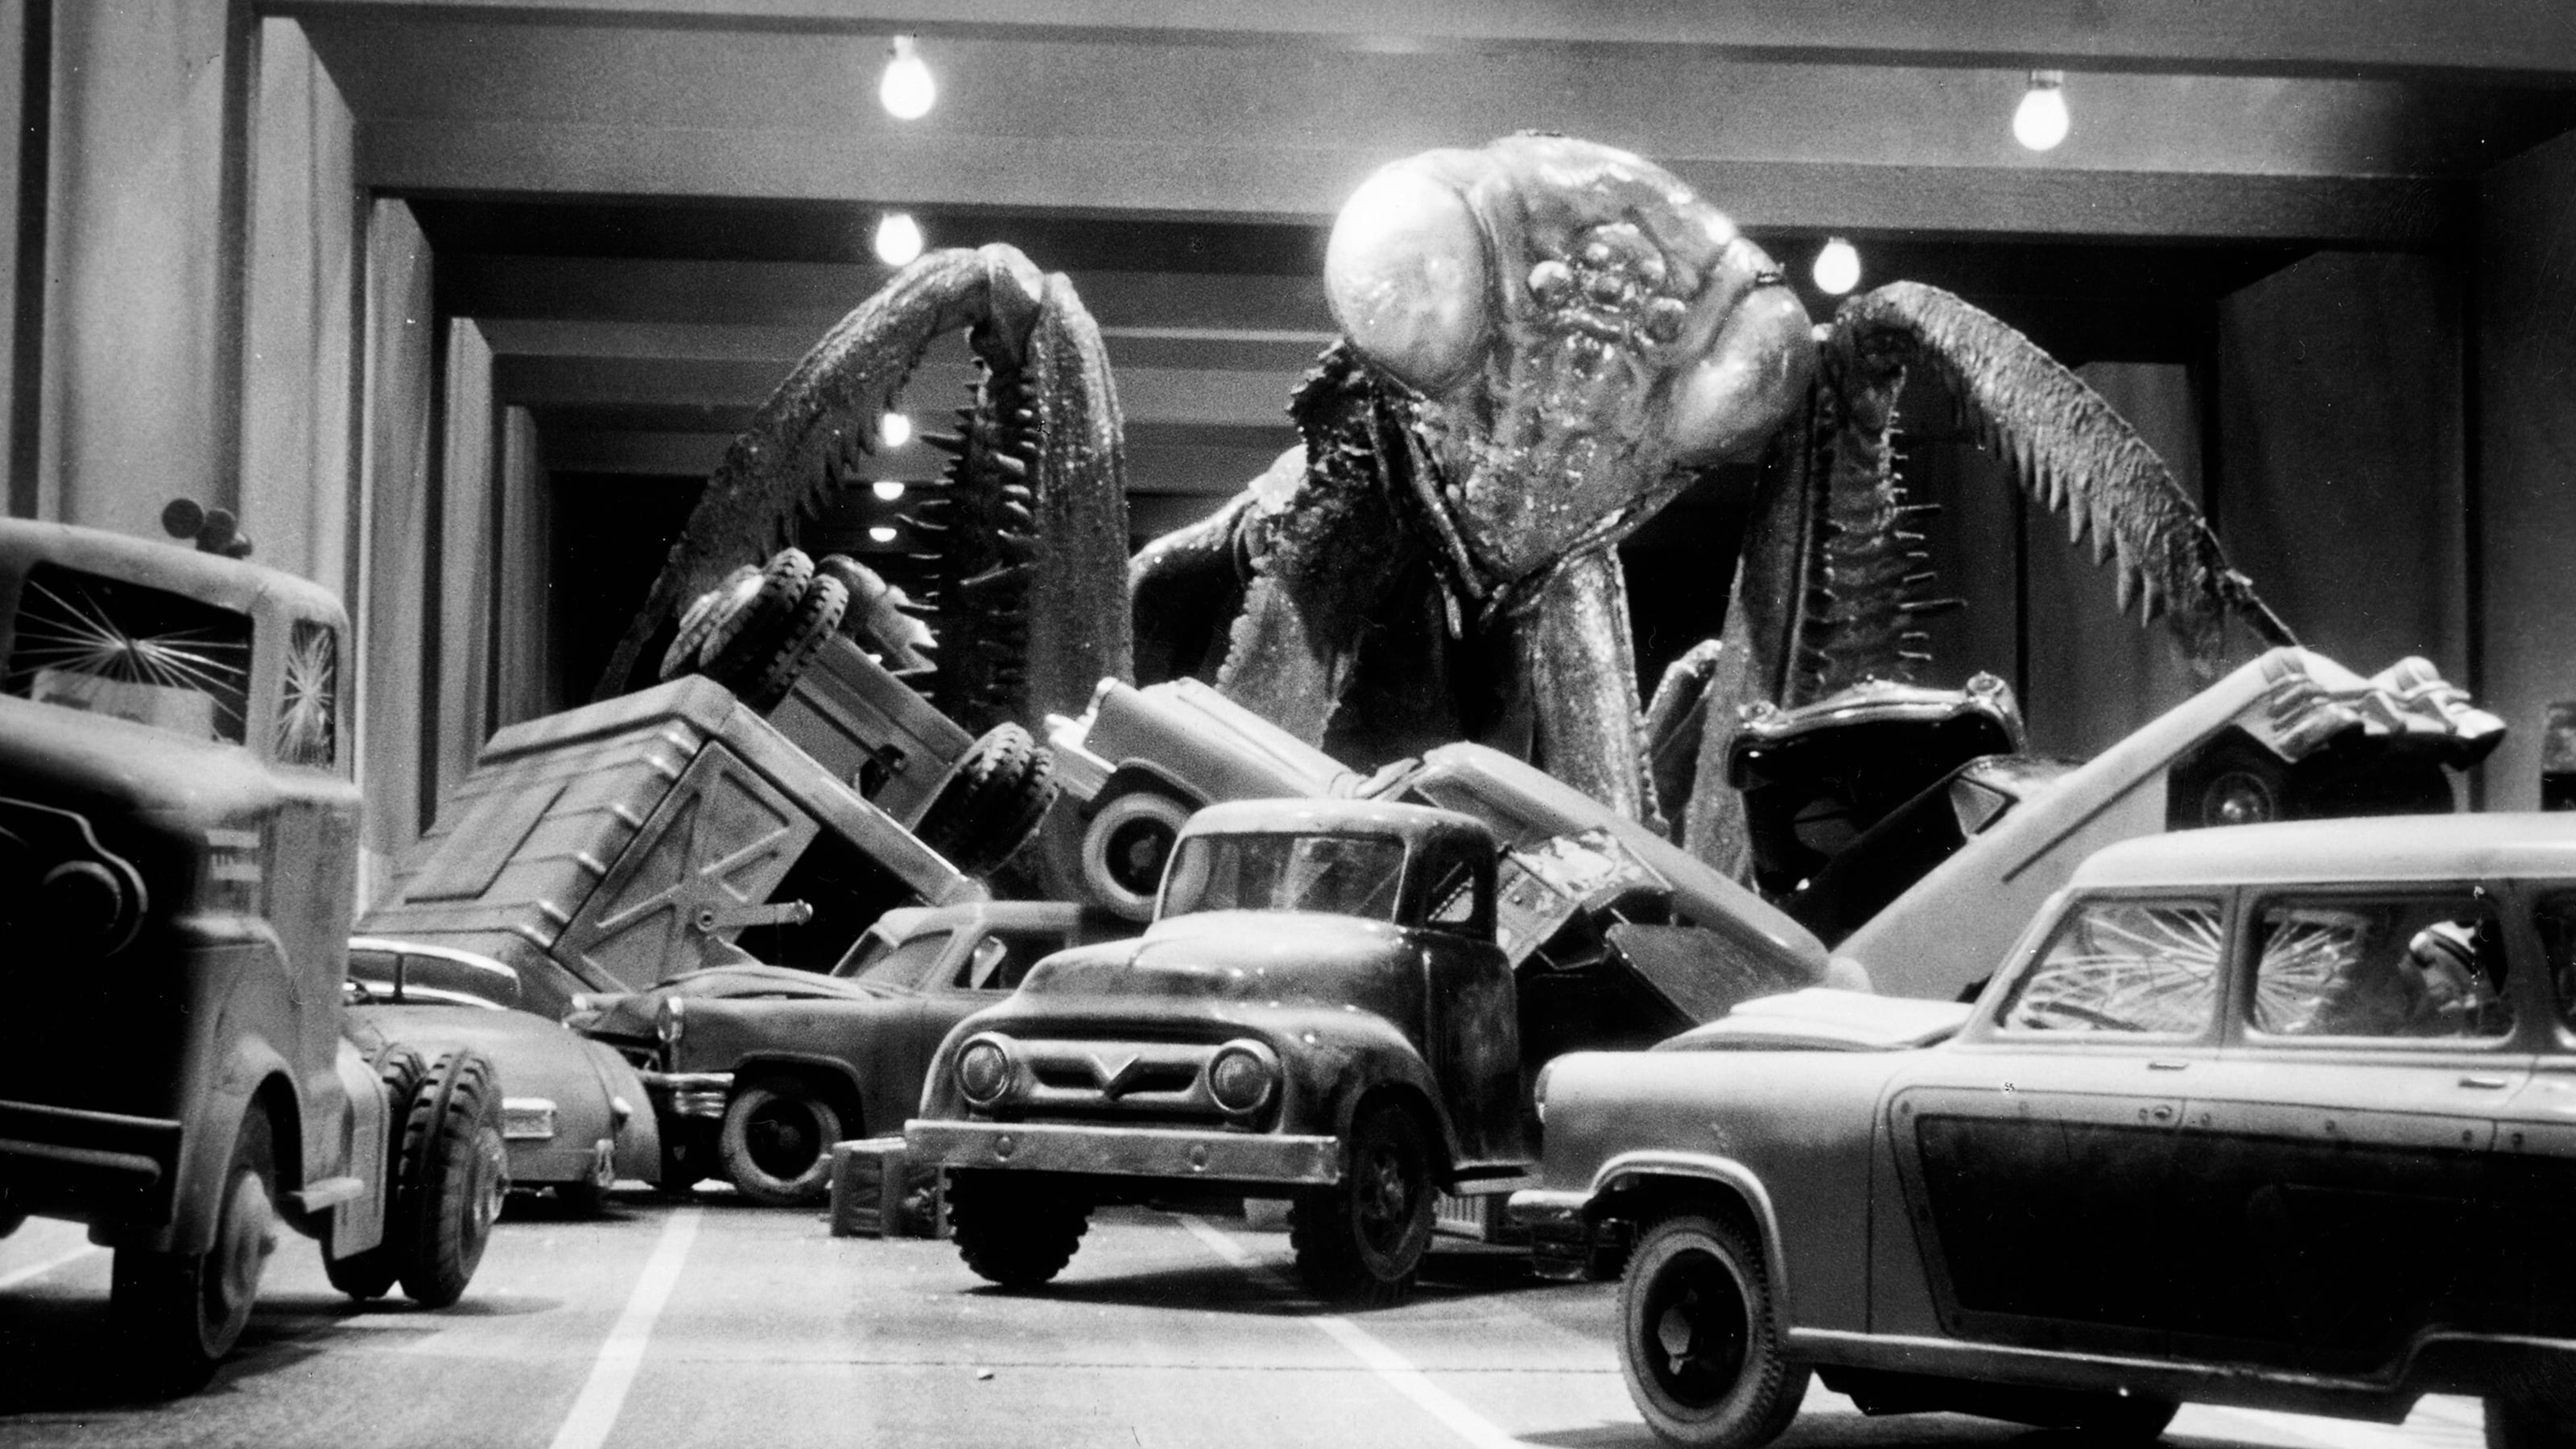 The giant mantis attacks the Holland Tunnel in The Deadly Mantis (1957)